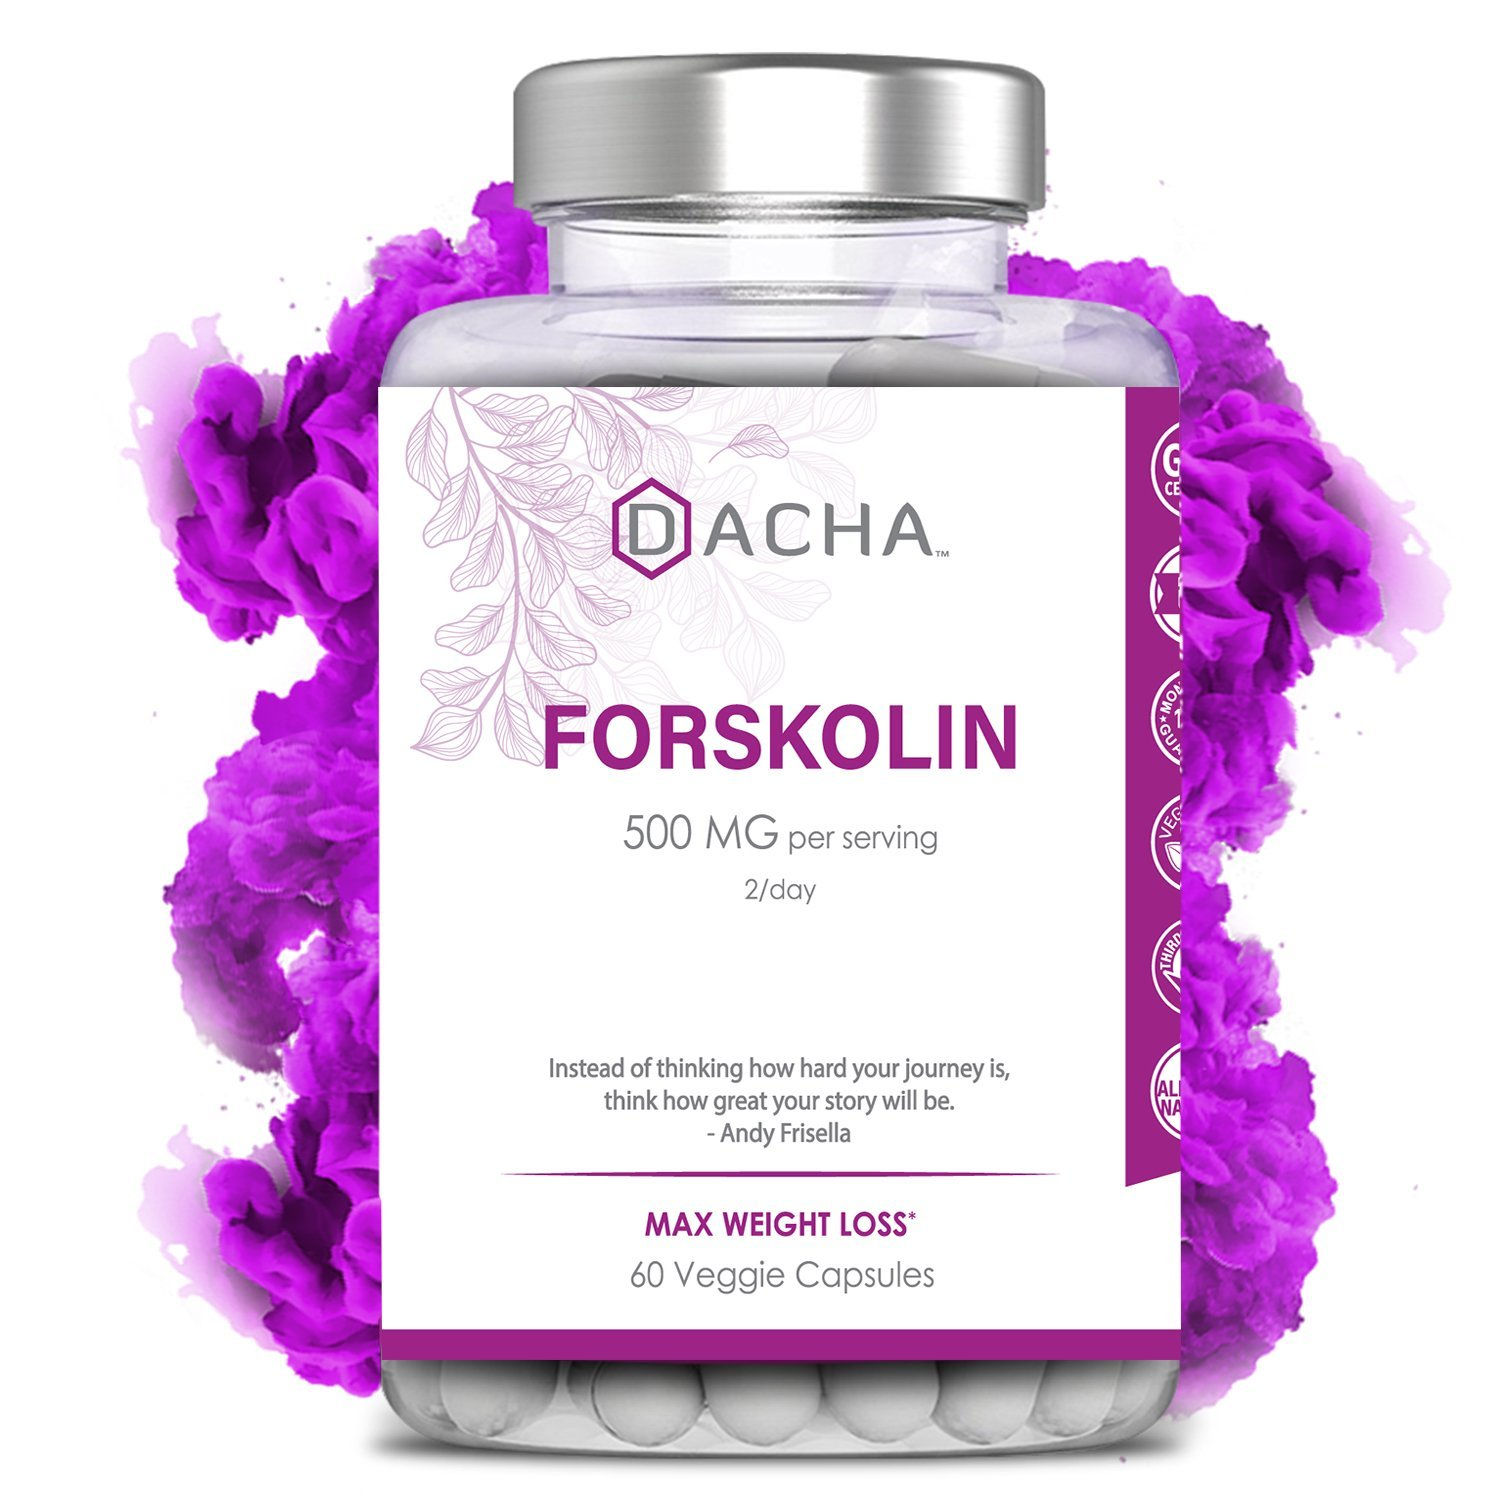 Premium Forskolin for Weight Loss - Keto Diet Pills That Work Fast for Women & Men, Pure Rapid Tone, All Natural 500mg Extract, Luna Trim, Coleus Forskohlii, Advanced Dietary Supplement Products